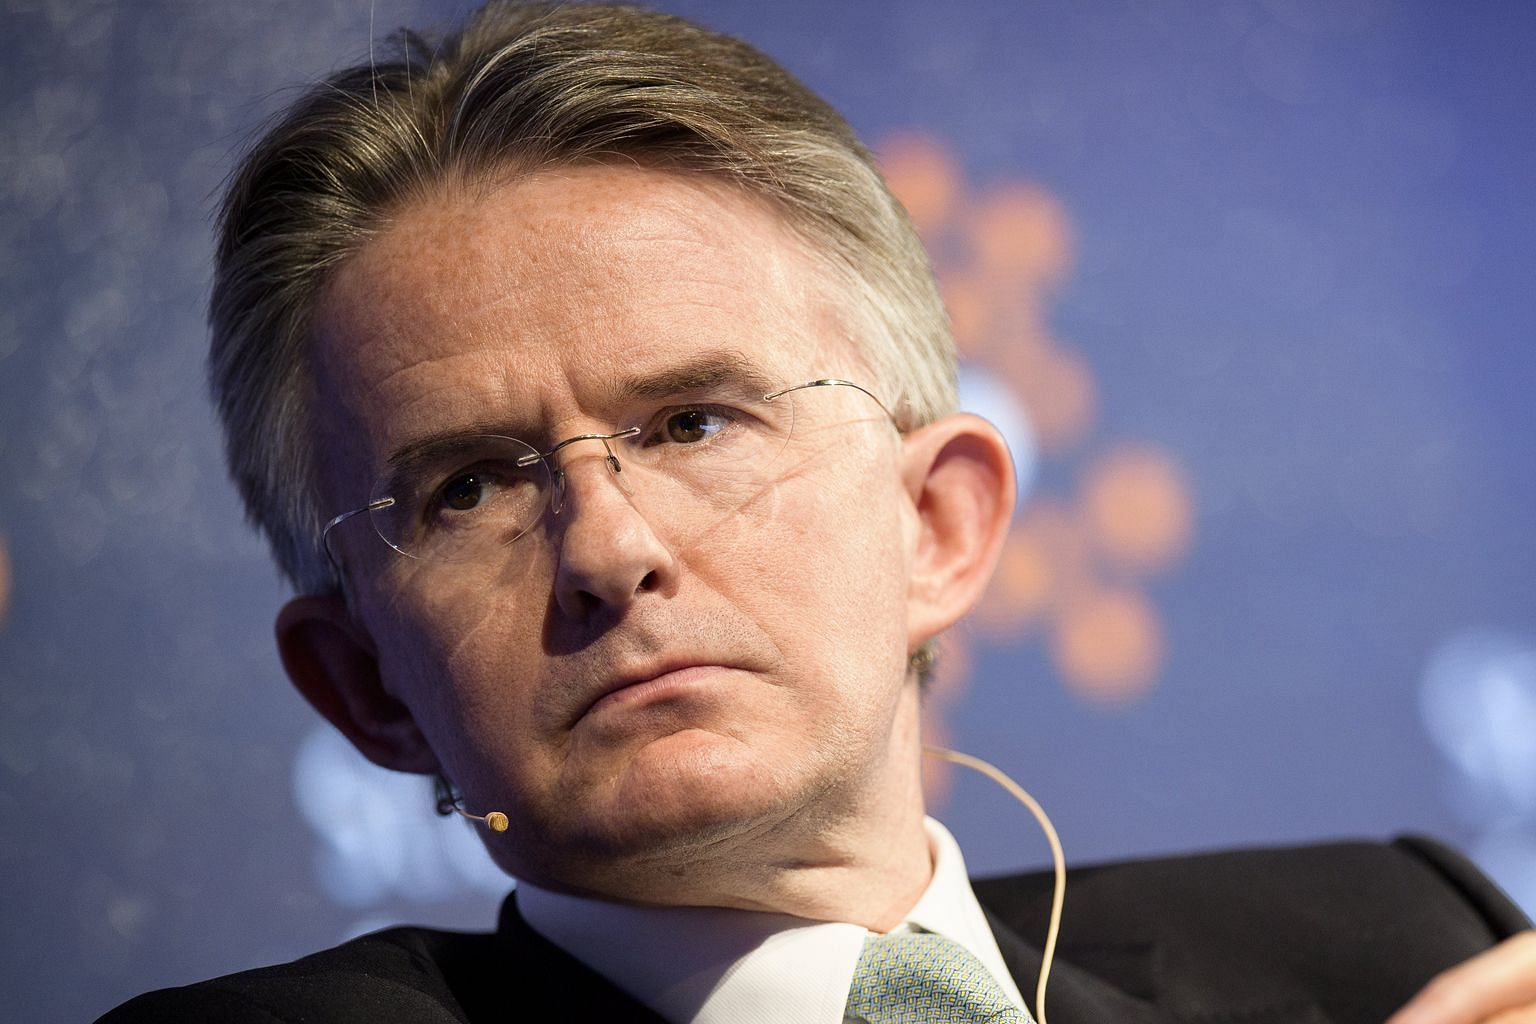 CEO John Flint plans to grow HSBC by expanding in Asian markets such as Greater China and South-east Asia.